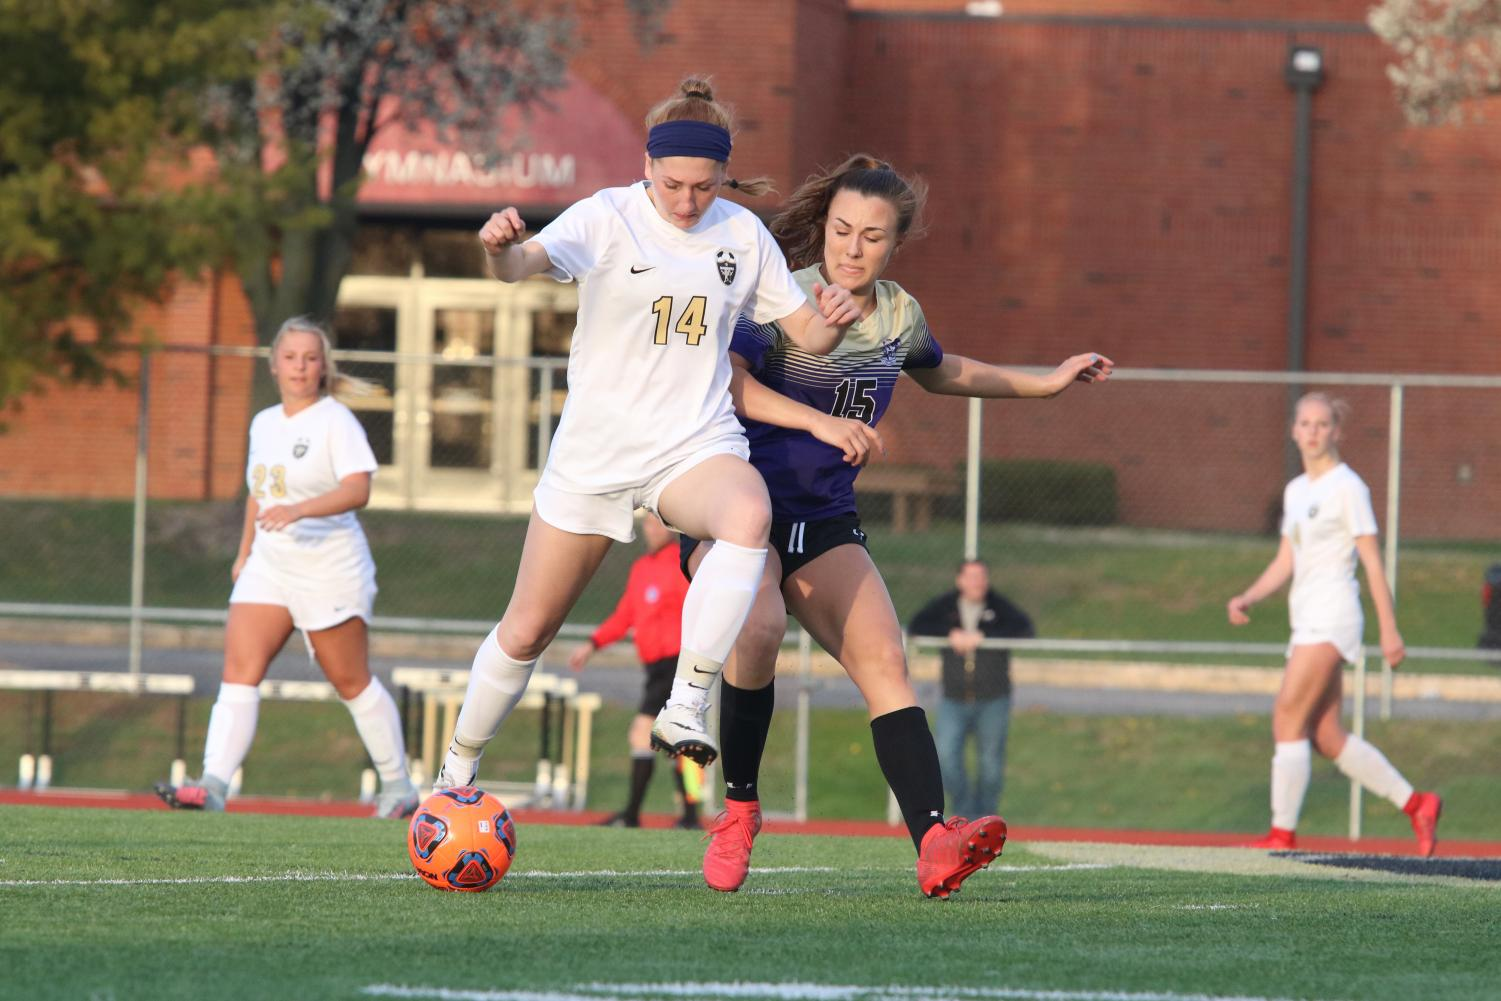 Senior Megan Crain takes on Troy defender Morgan Bova in a GAC South contest on 4/17 at Francis Howell North. The Trojans won the game by a score of 2-1.